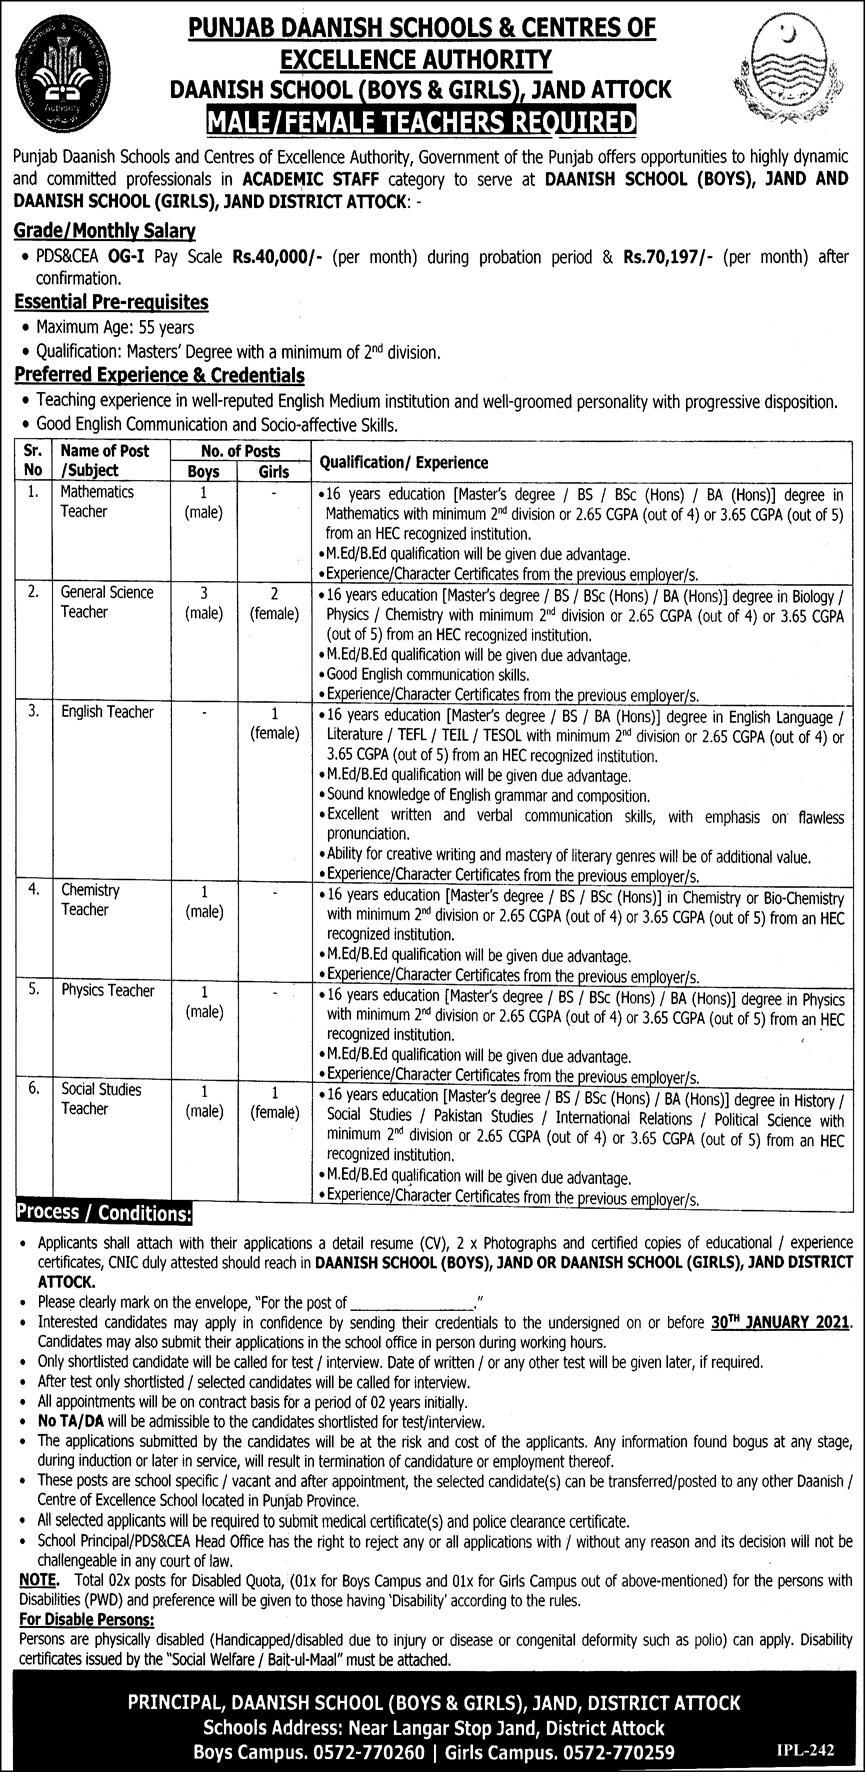 Punjab Daanish Schools & Centres of Excellence Authority Jobs January 2021